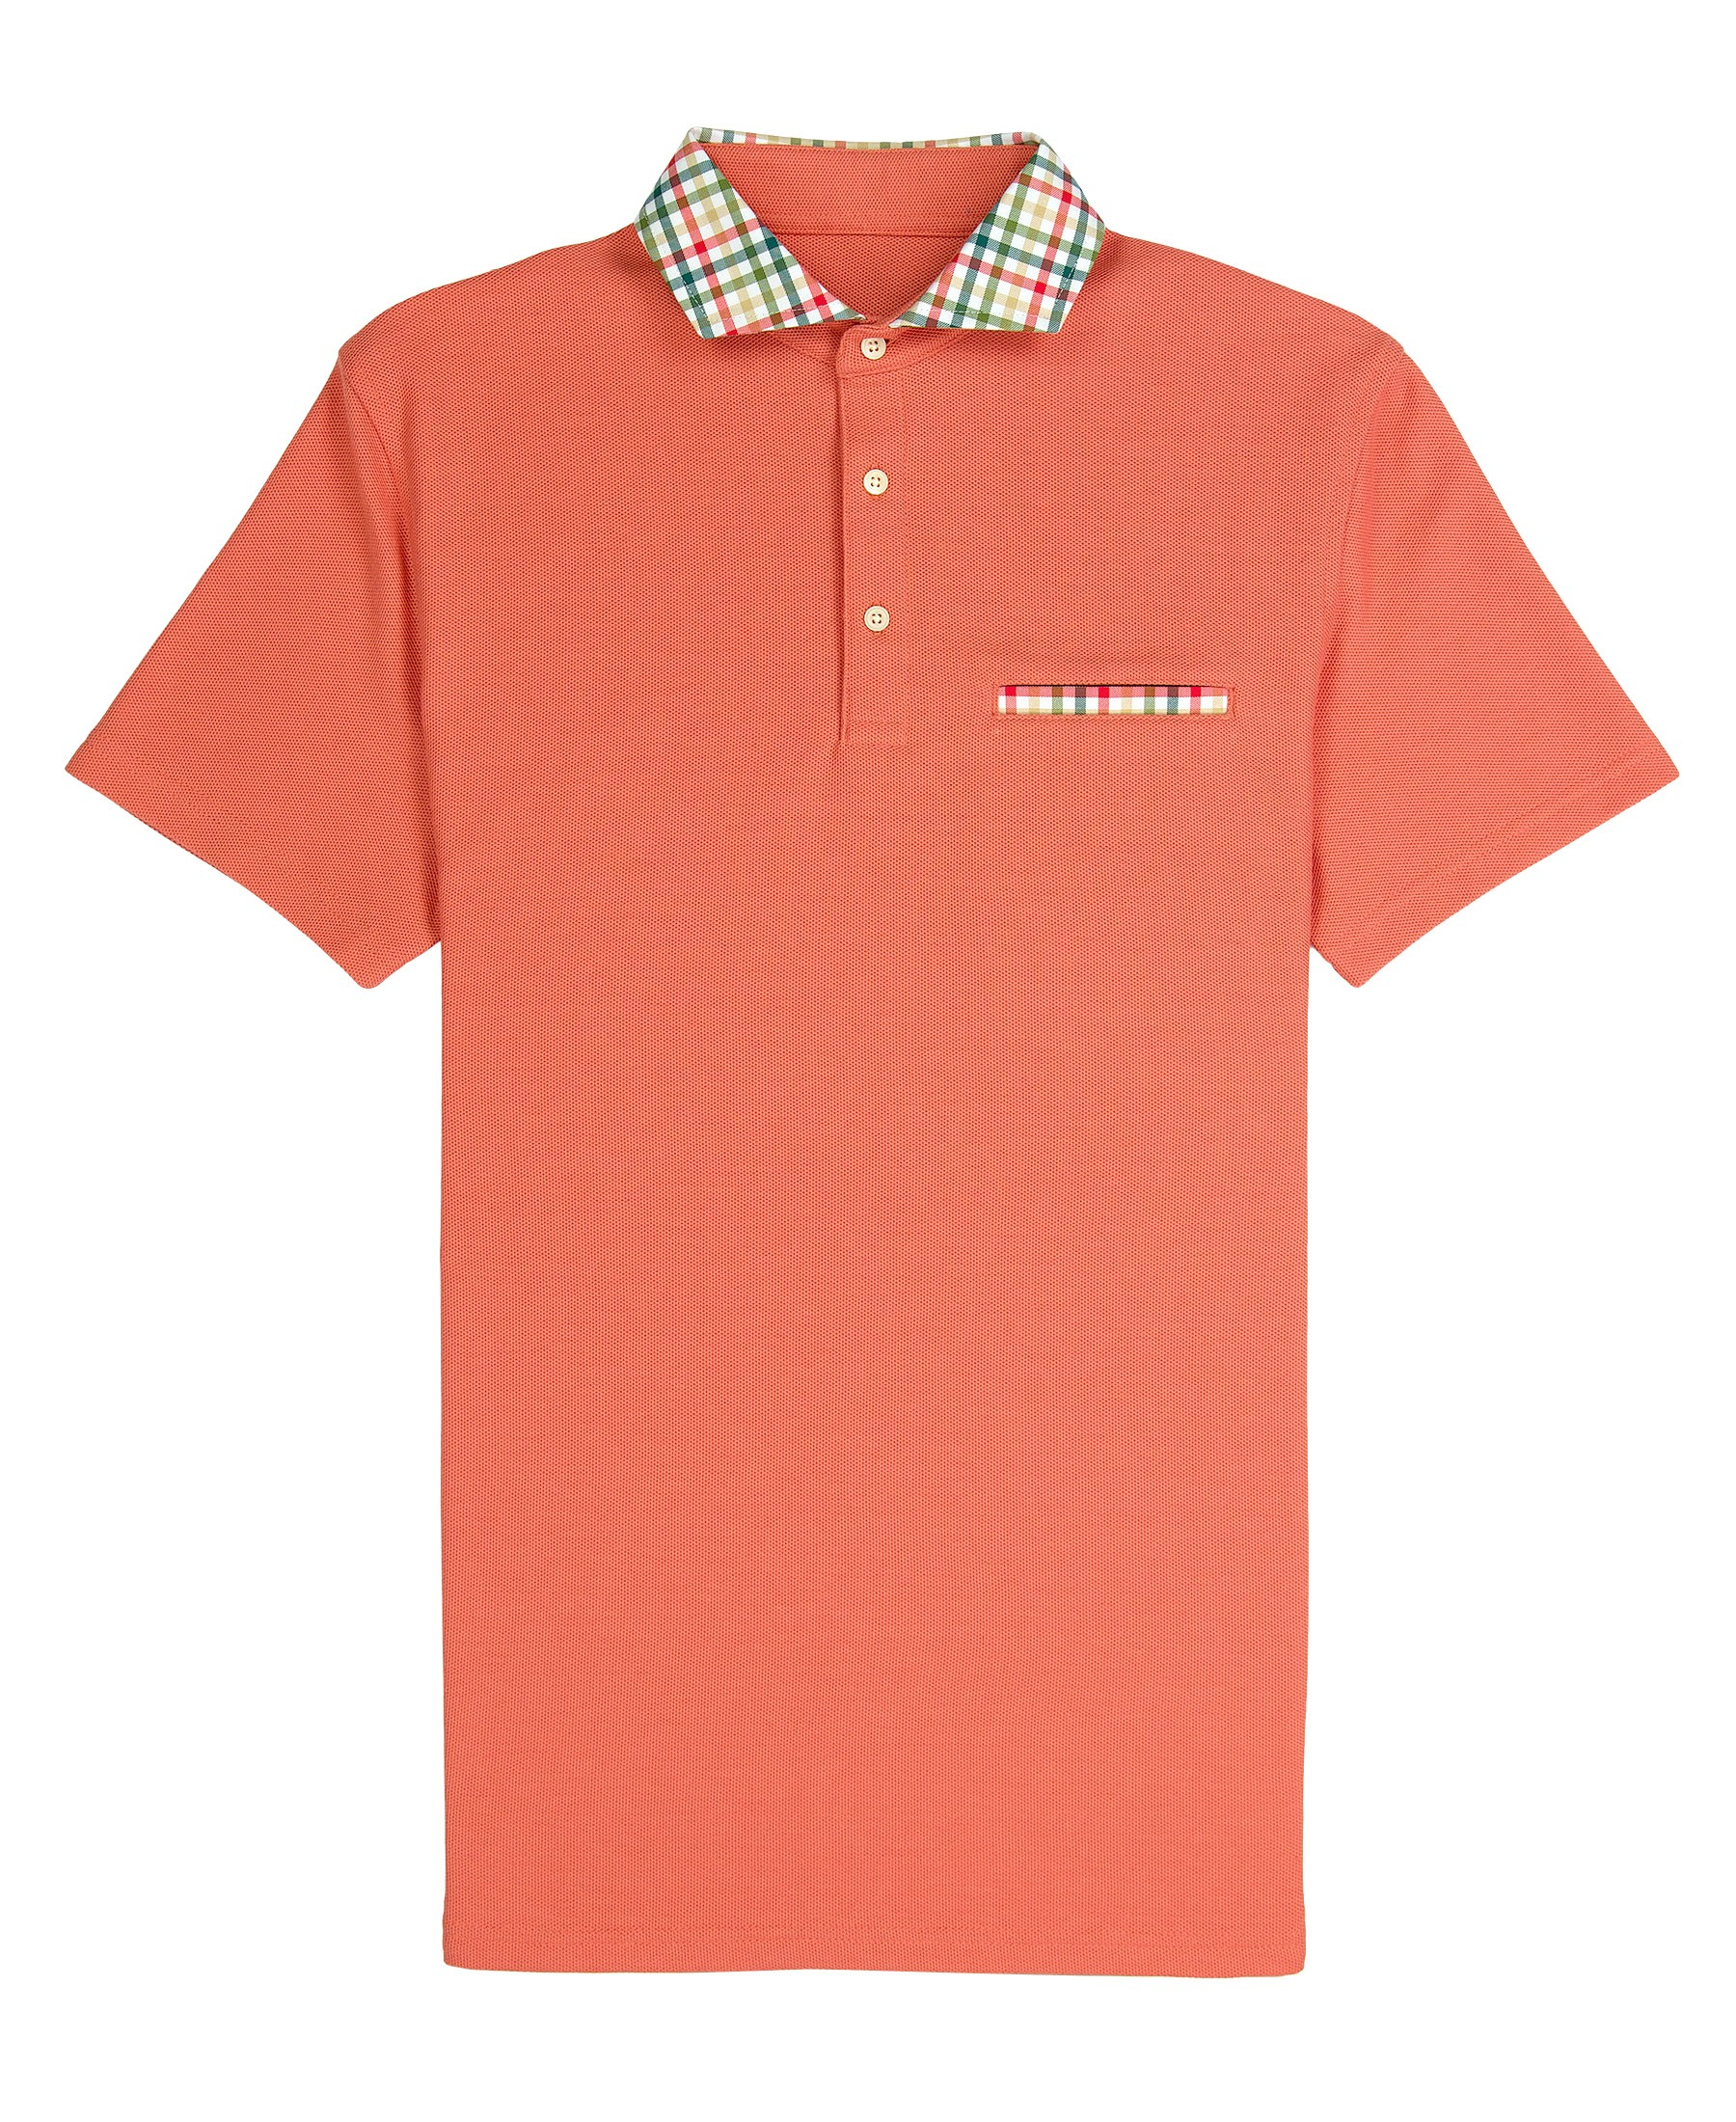 Carnegie - Soft Orange Comfort Pique